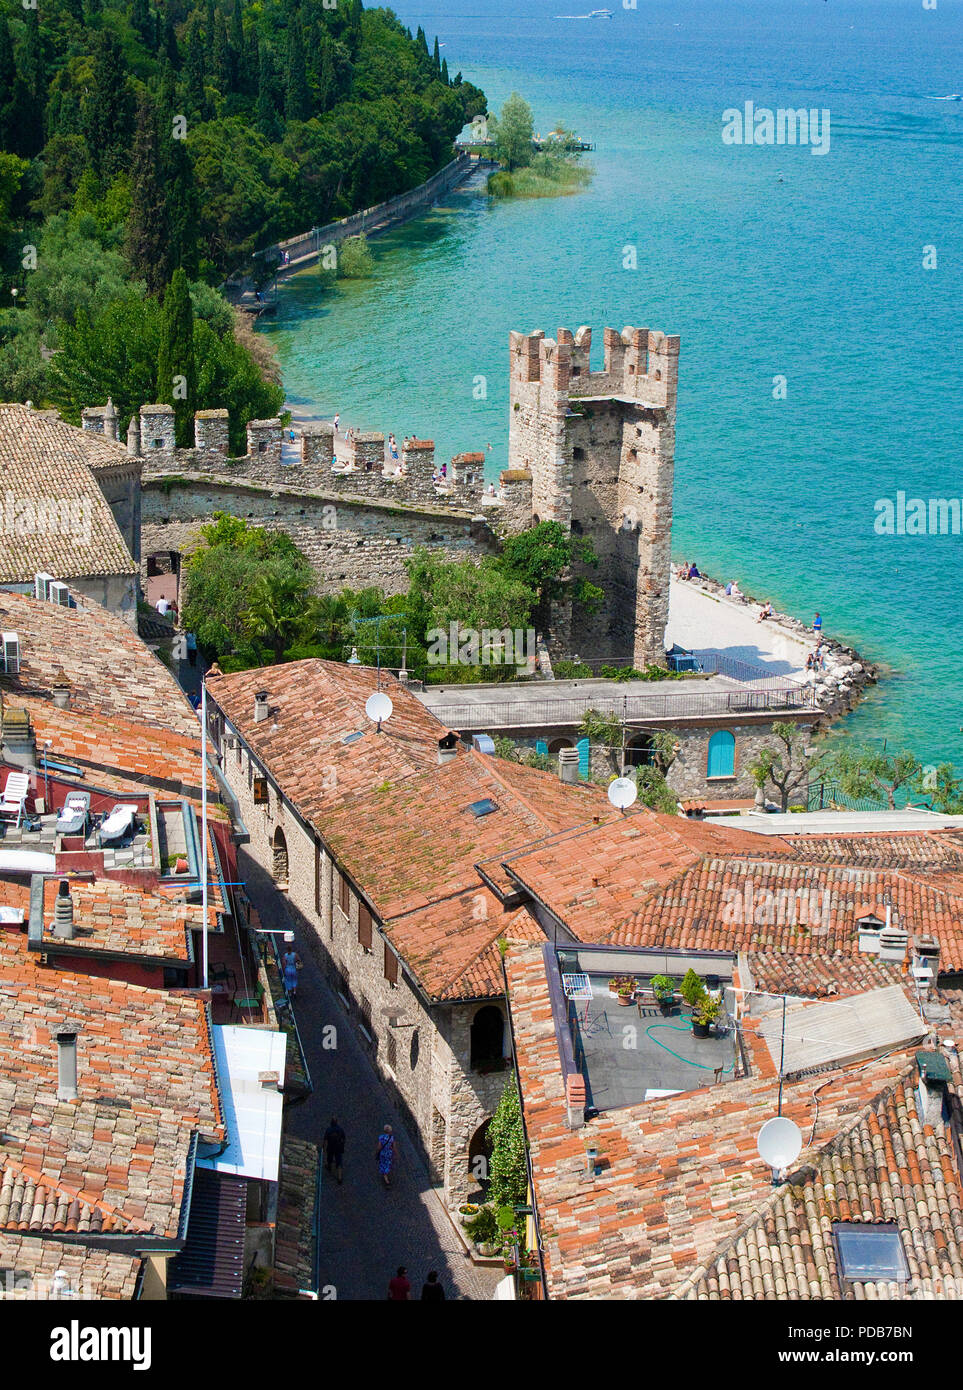 View from Scaliger castle on the old town of Sirmione and Lake Garda, Lombardy, Italy - Stock Image